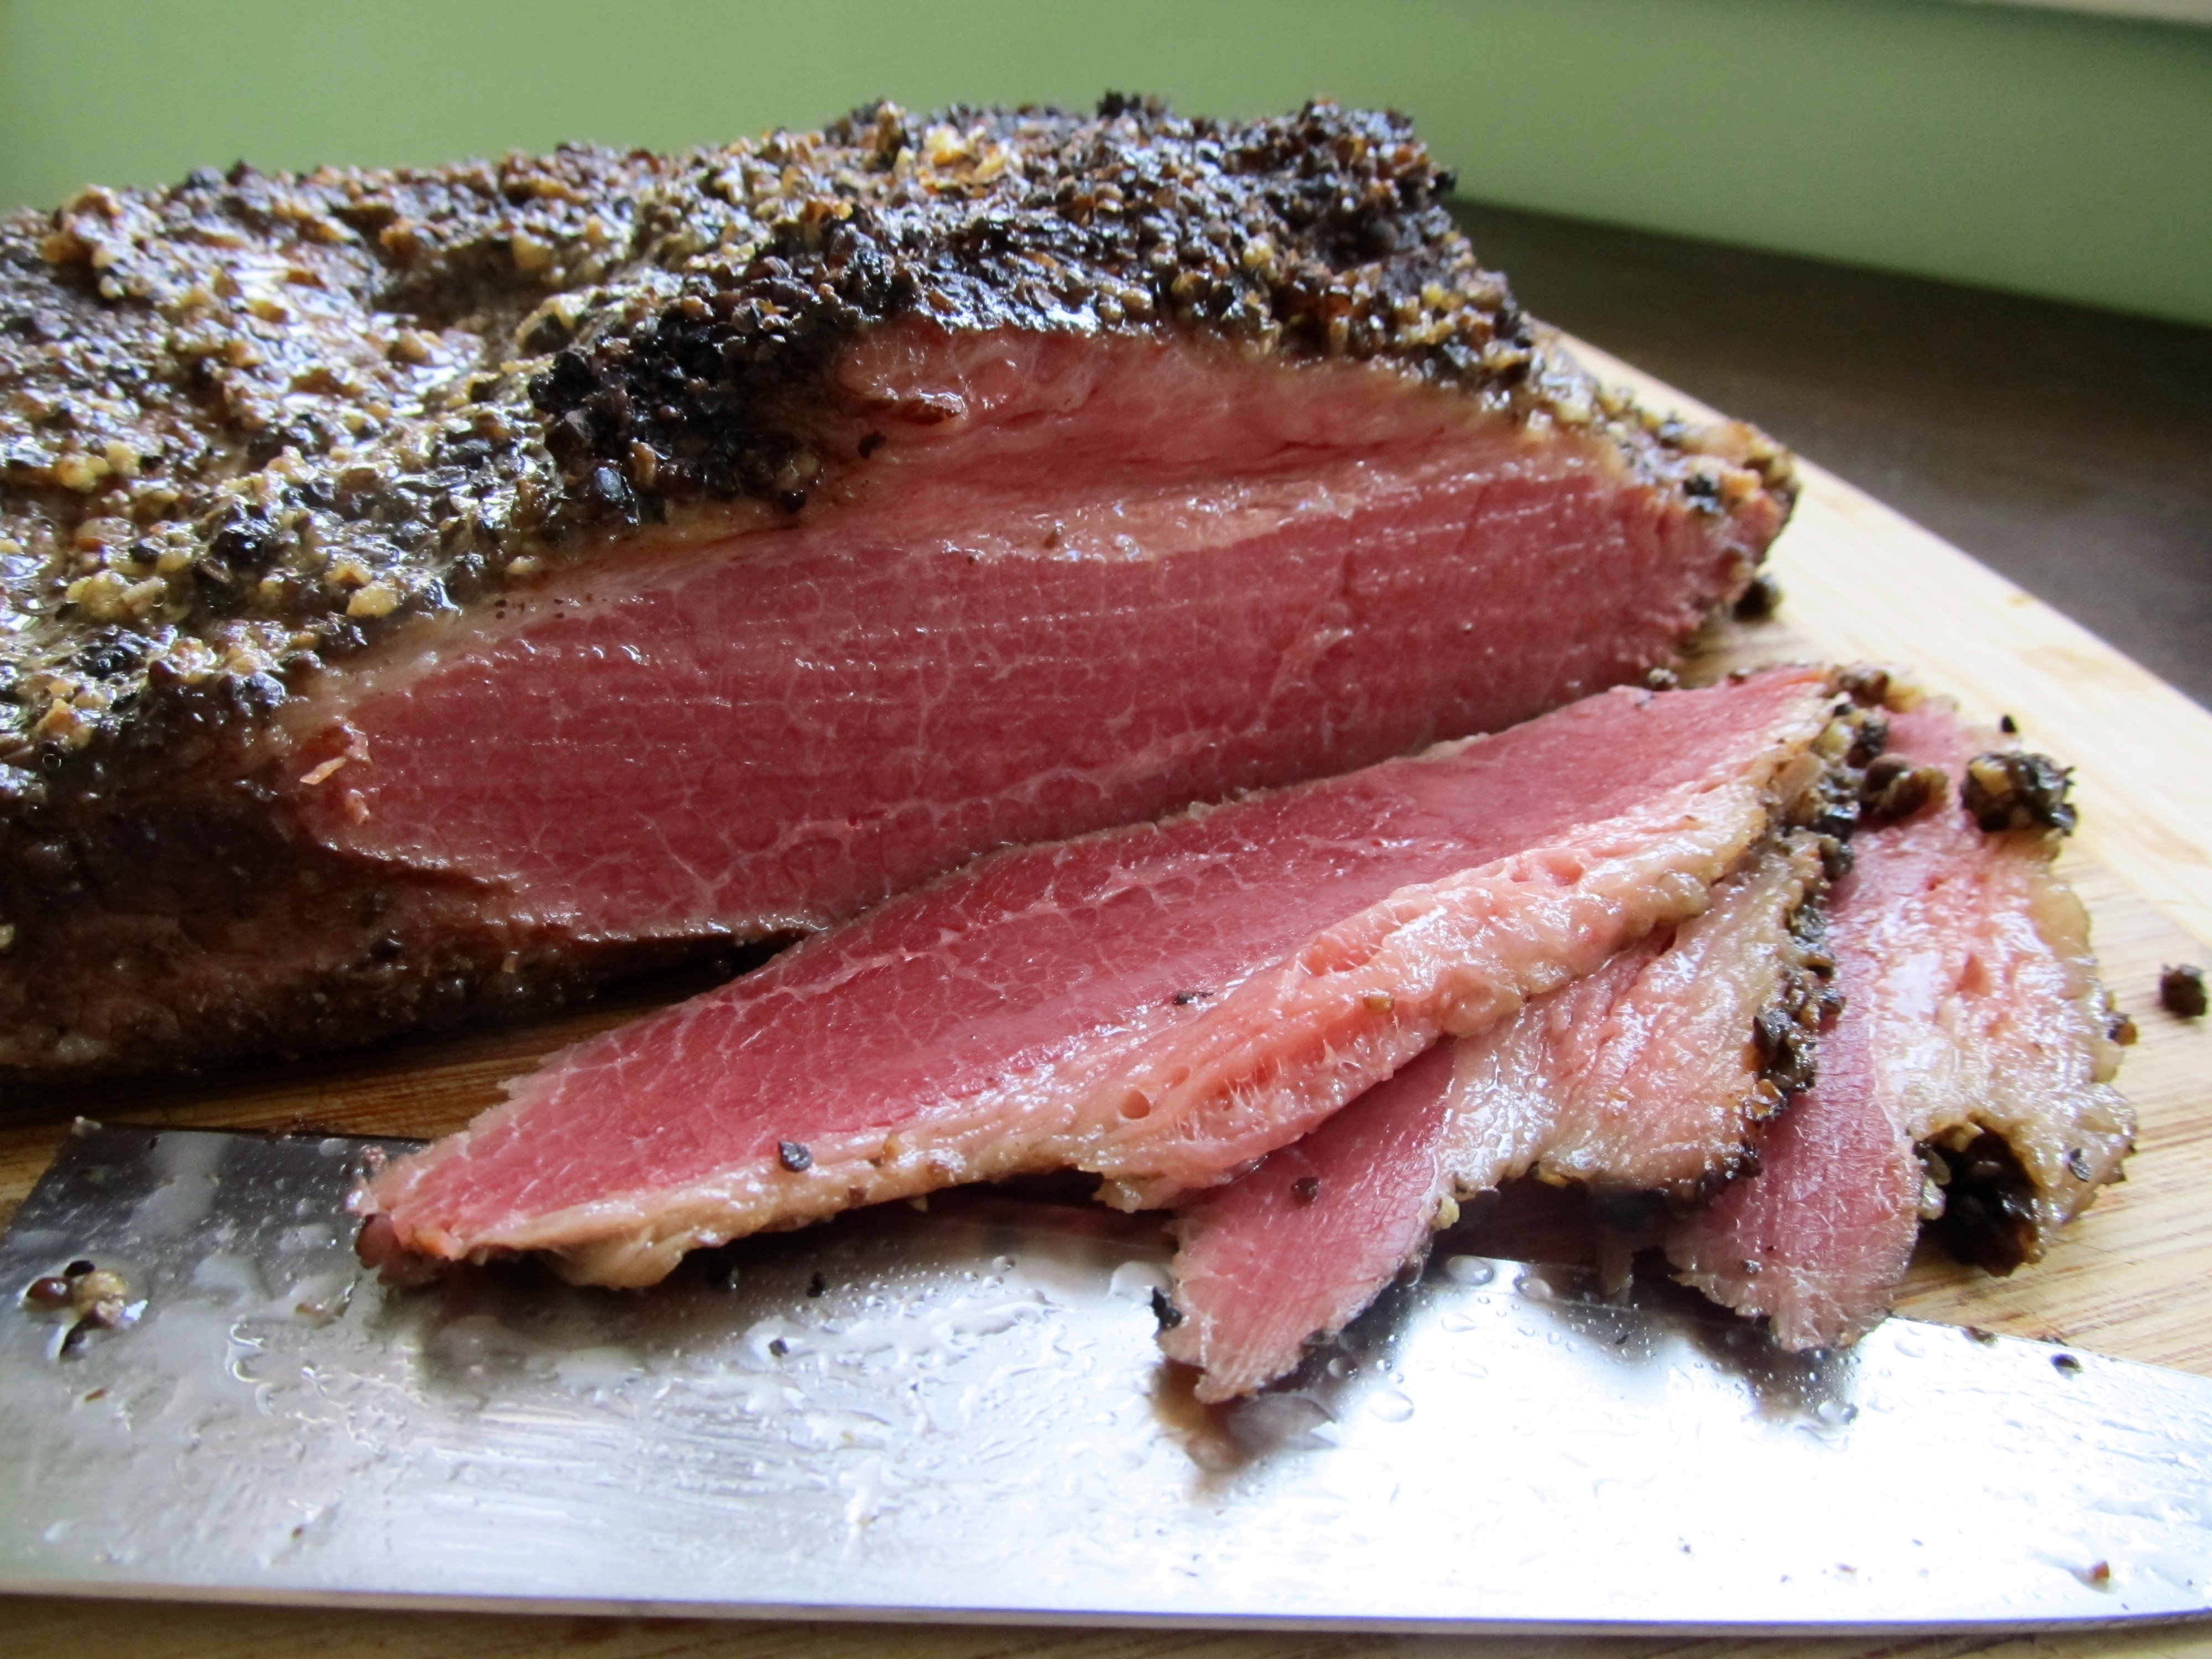 How To Make Homemade Pastrami A K A Smoked Meat The Roaming Gastrognome